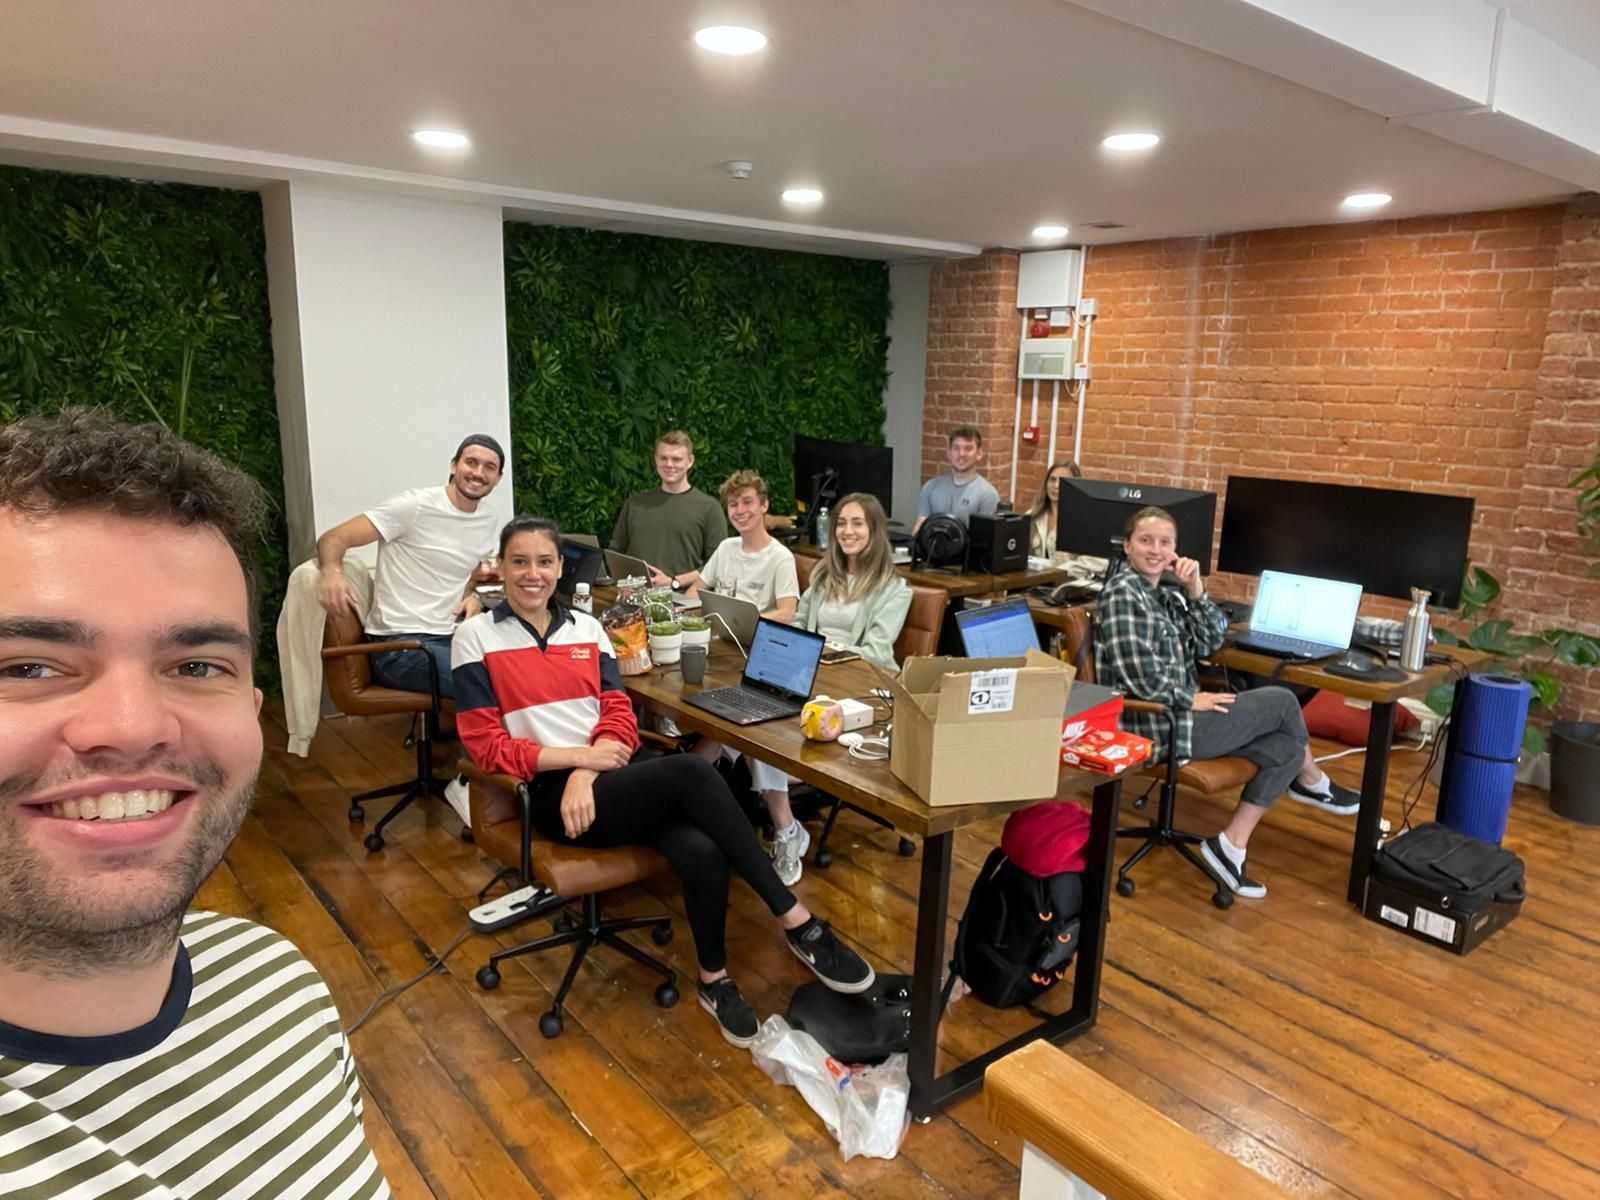 Picture of the team sitting in the new office at computers.